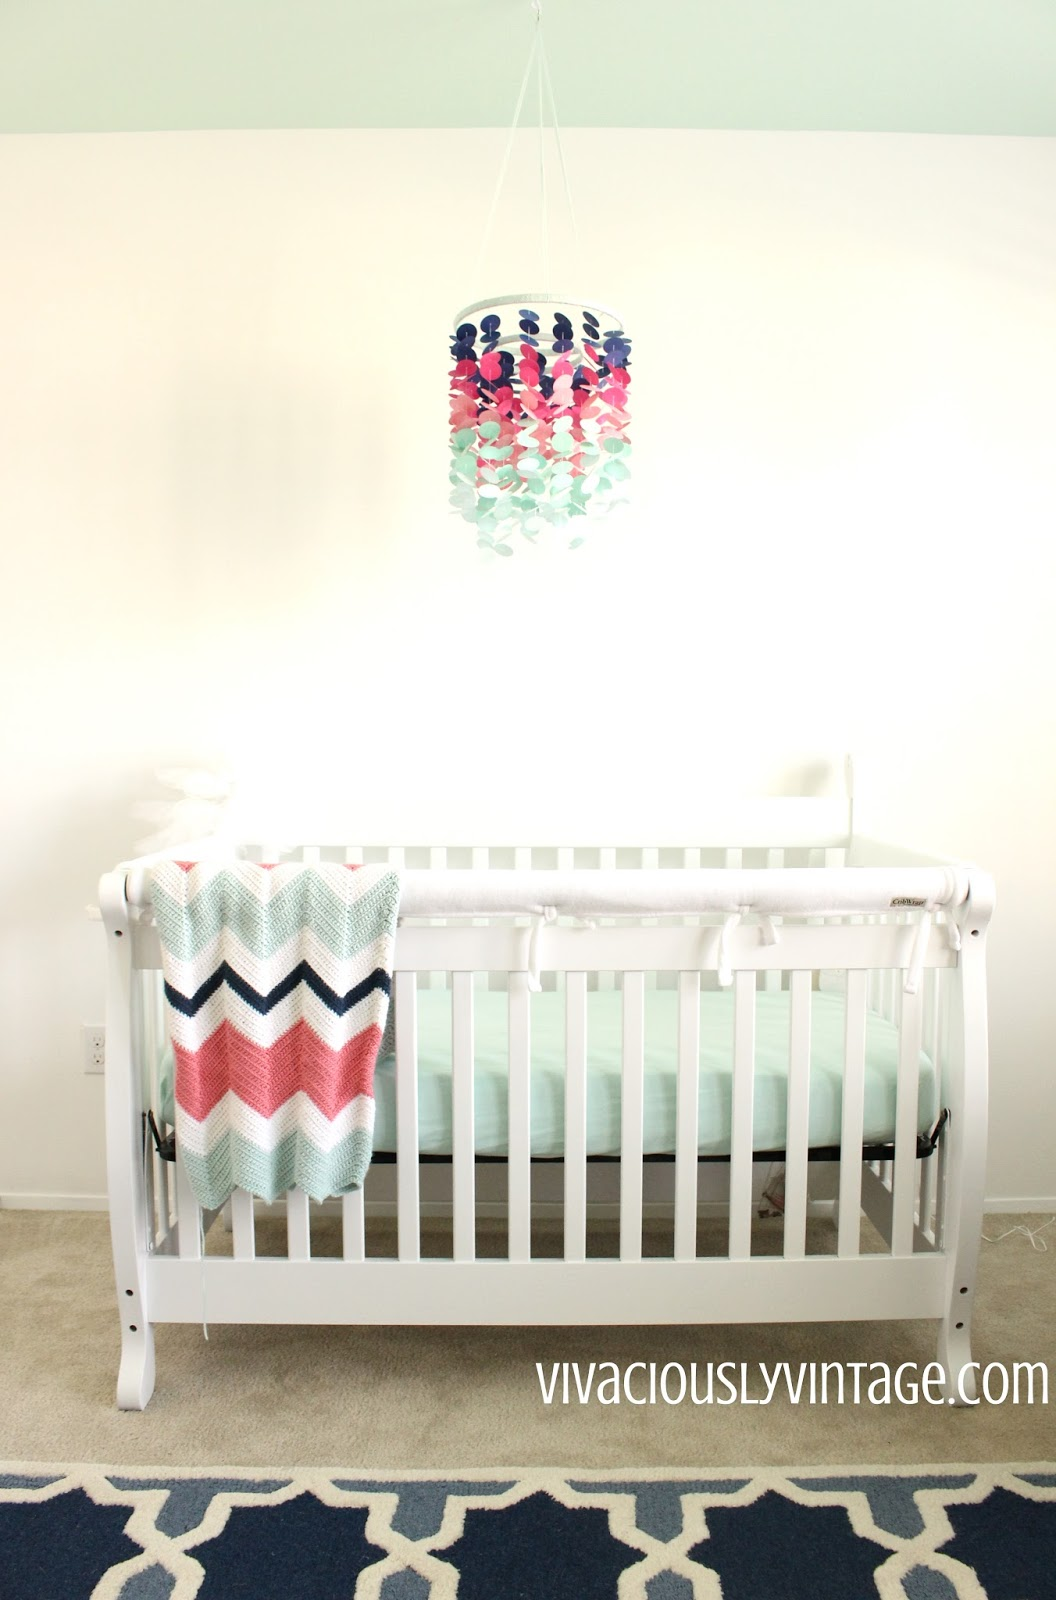 Mint, Coral, & Navy Ombre Baby Mobile